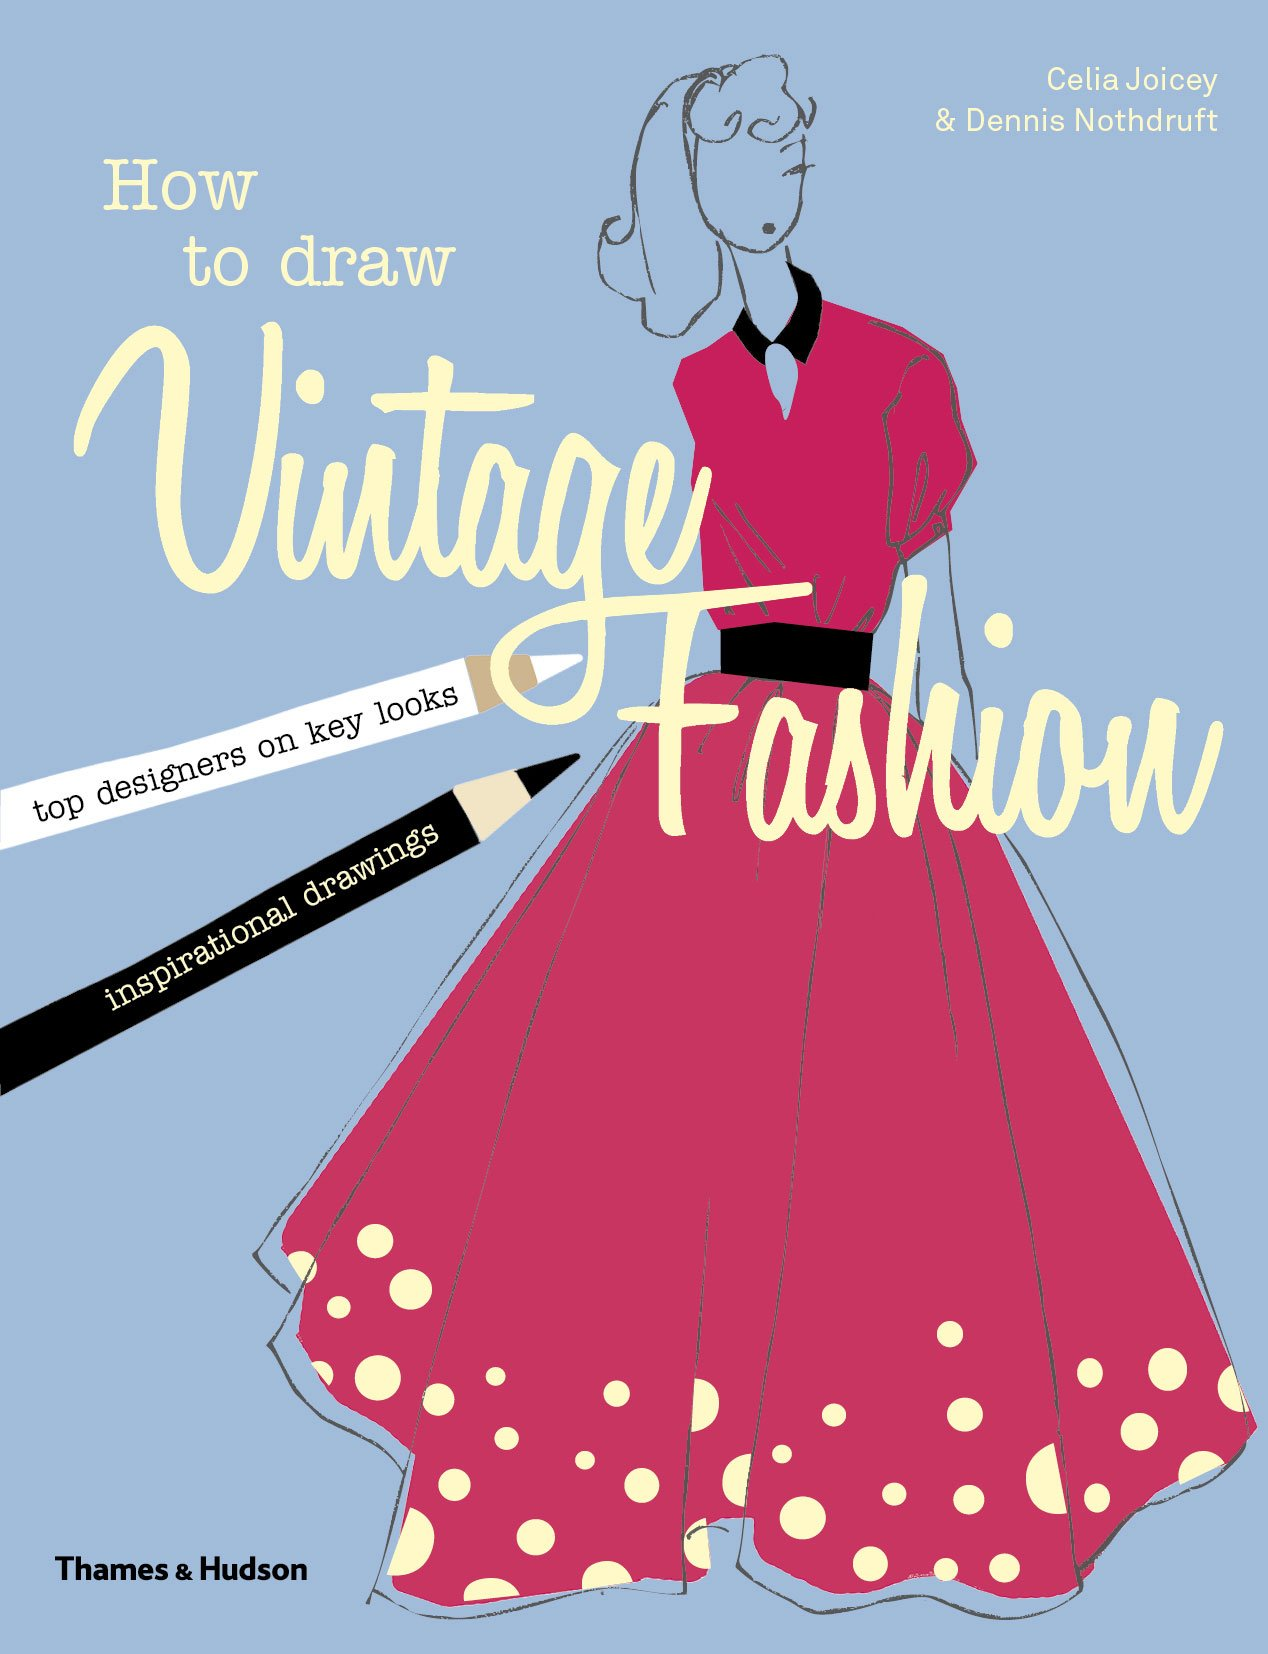 How to draw vintage fashion (Anglais) Broché – 1 octobre 2014 Celia Joicey Dennis Nothdruft Thames & Hudson Ltd 0500650373